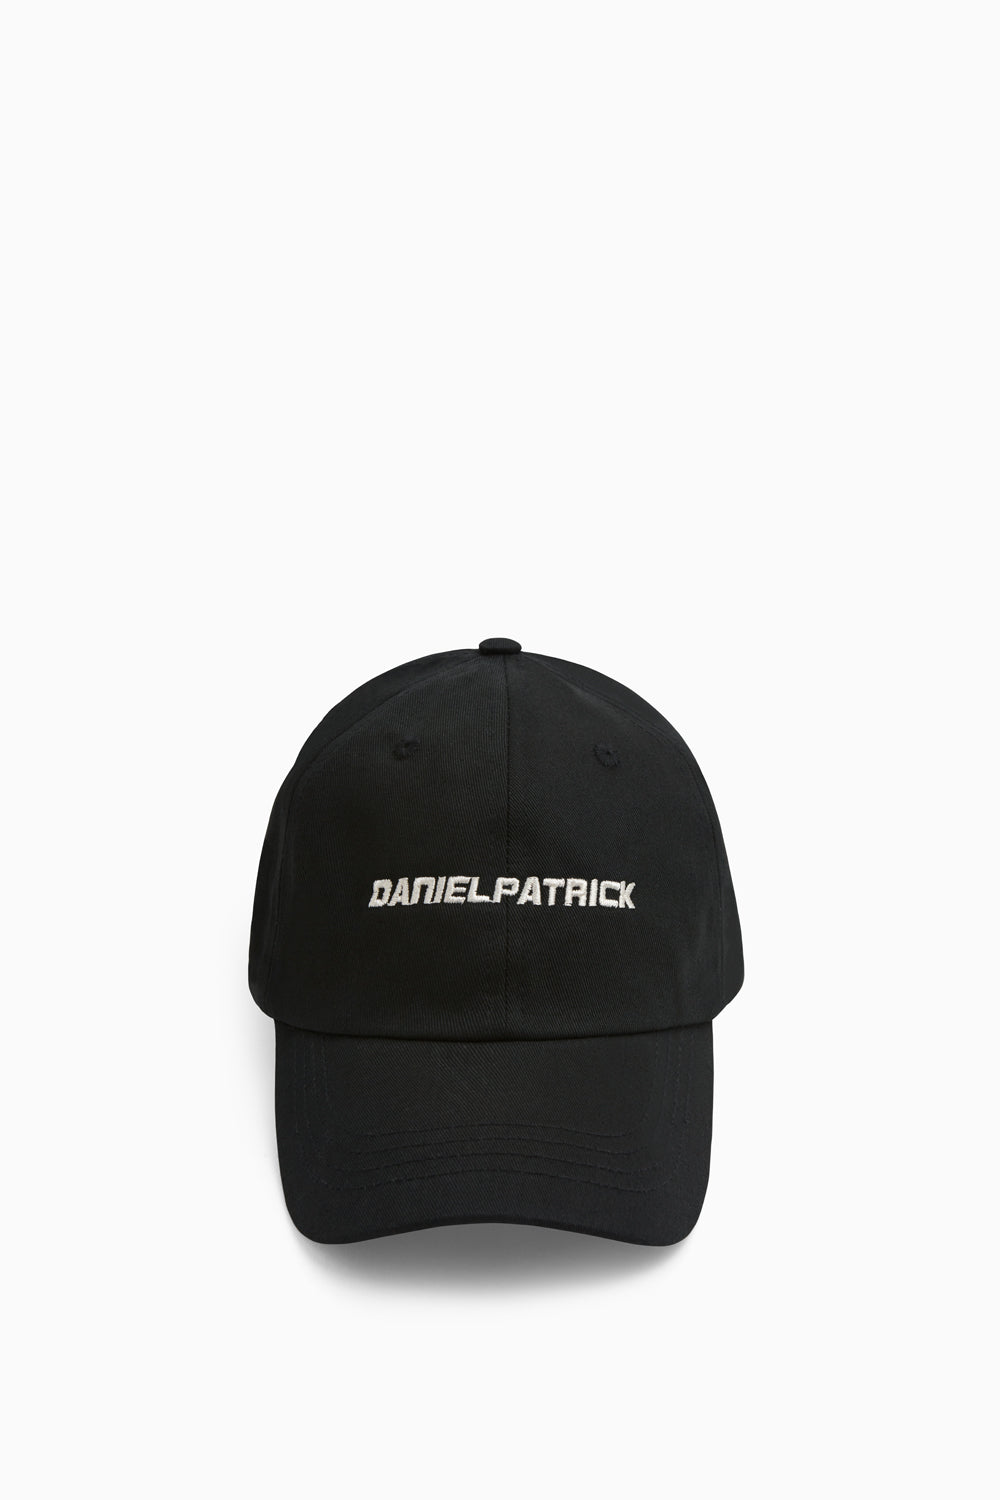 DP sport cap in black/ivory by daniel patrick